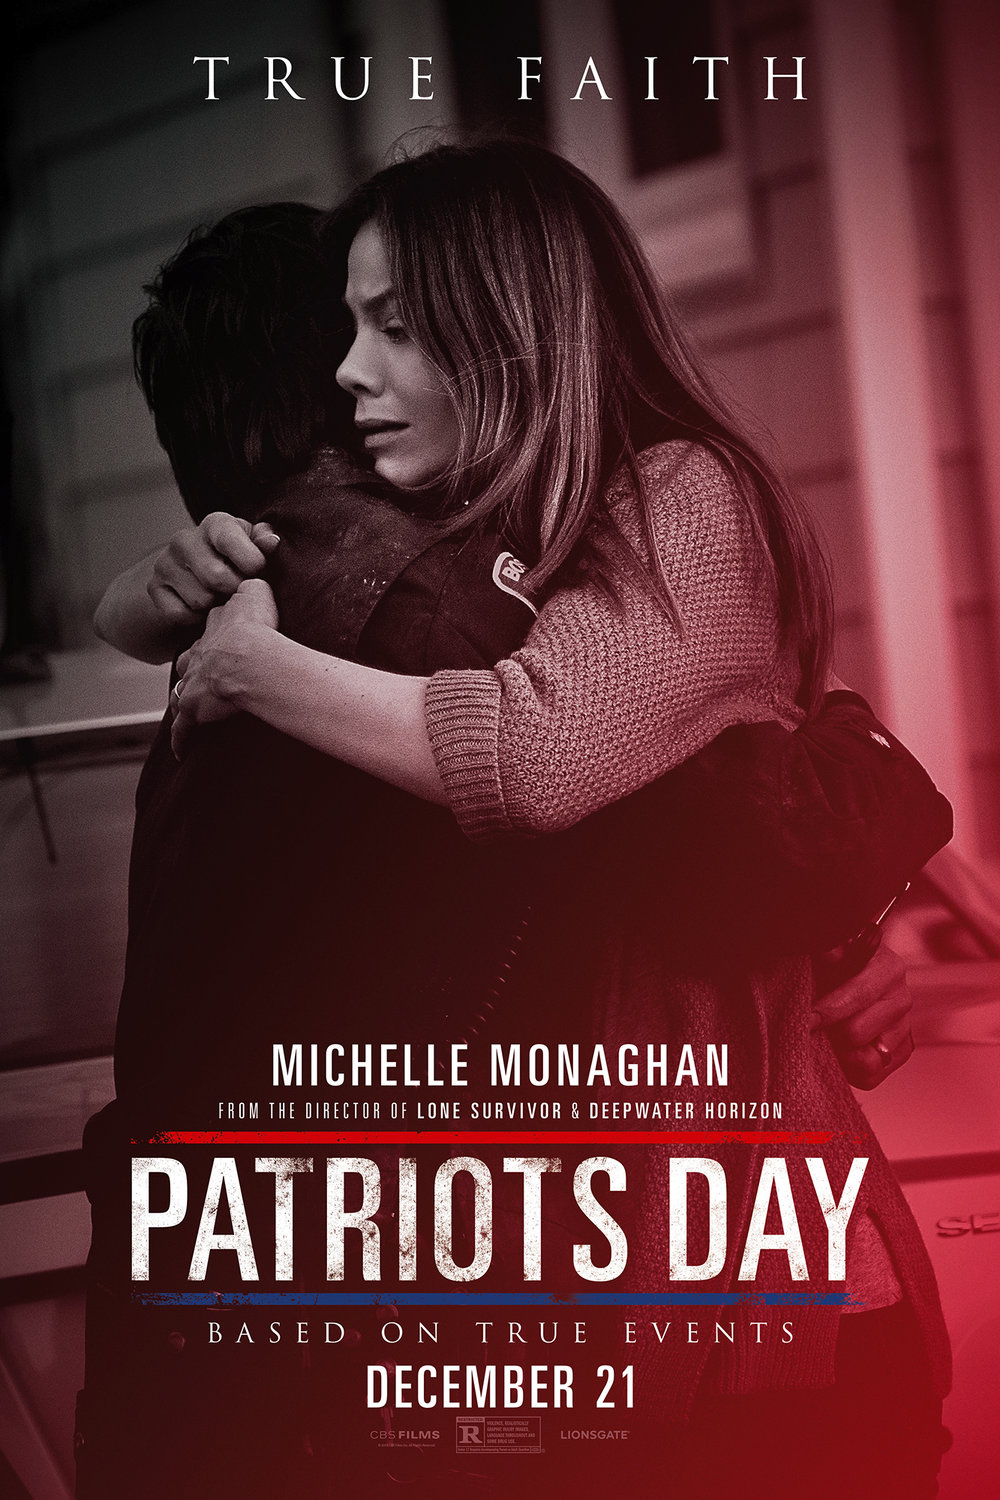 PatriotsDay_MM_48x72_WildPostings_100dpi.jpg